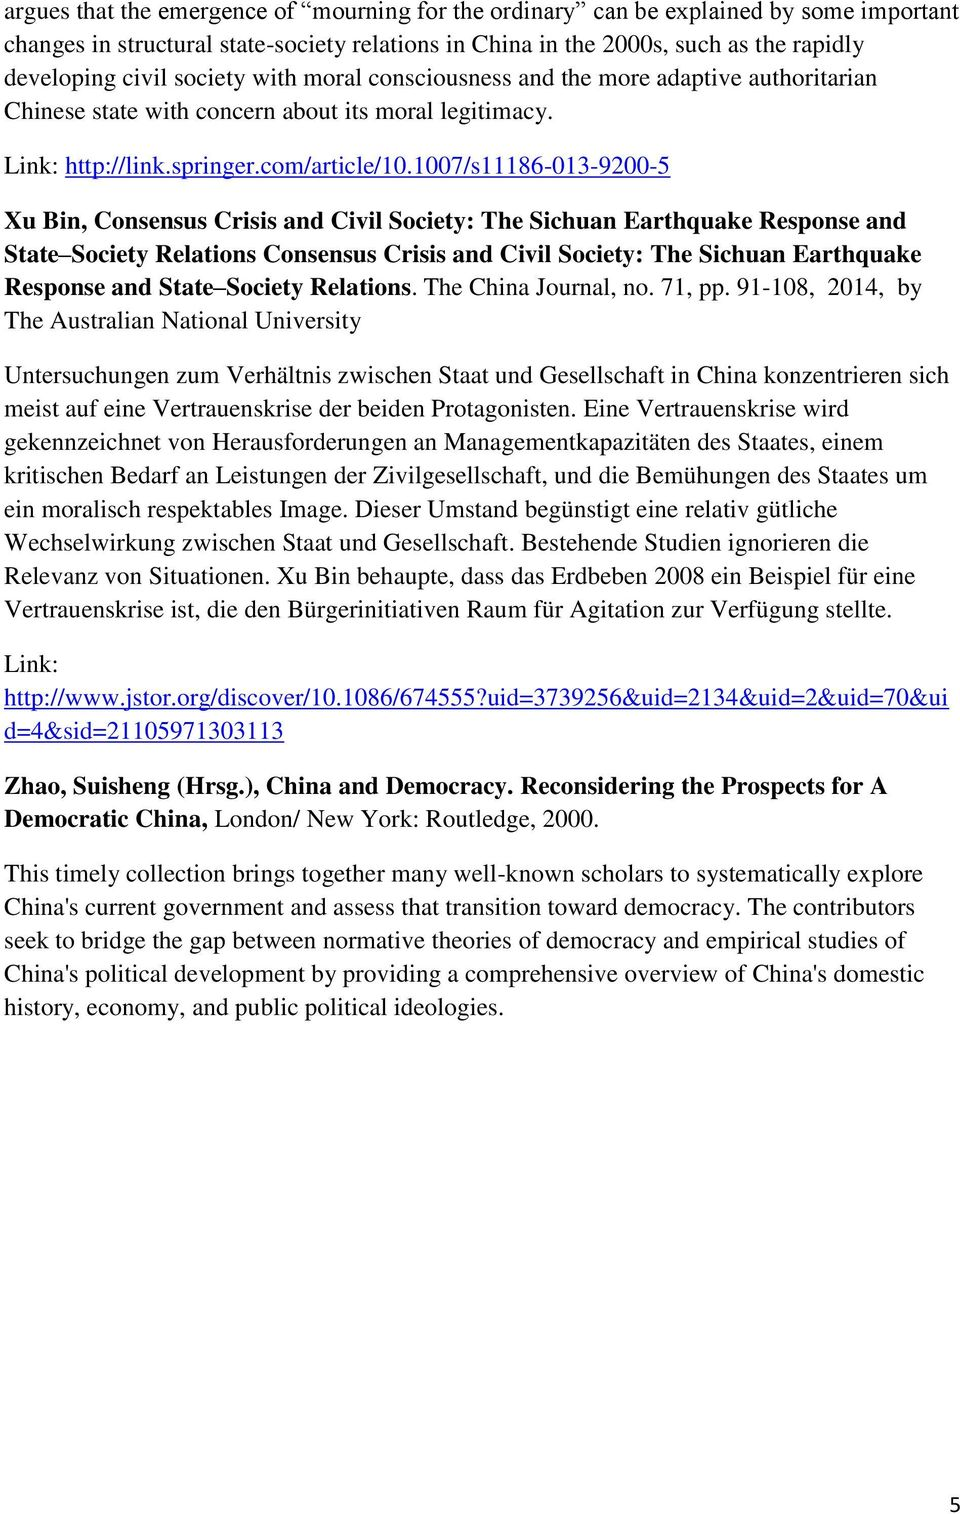 1007/s11186-013-9200-5 Xu Bin, Consensus Crisis and Civil Society: The Sichuan Earthquake Response and State Society Relations Consensus Crisis and Civil Society: The Sichuan Earthquake Response and